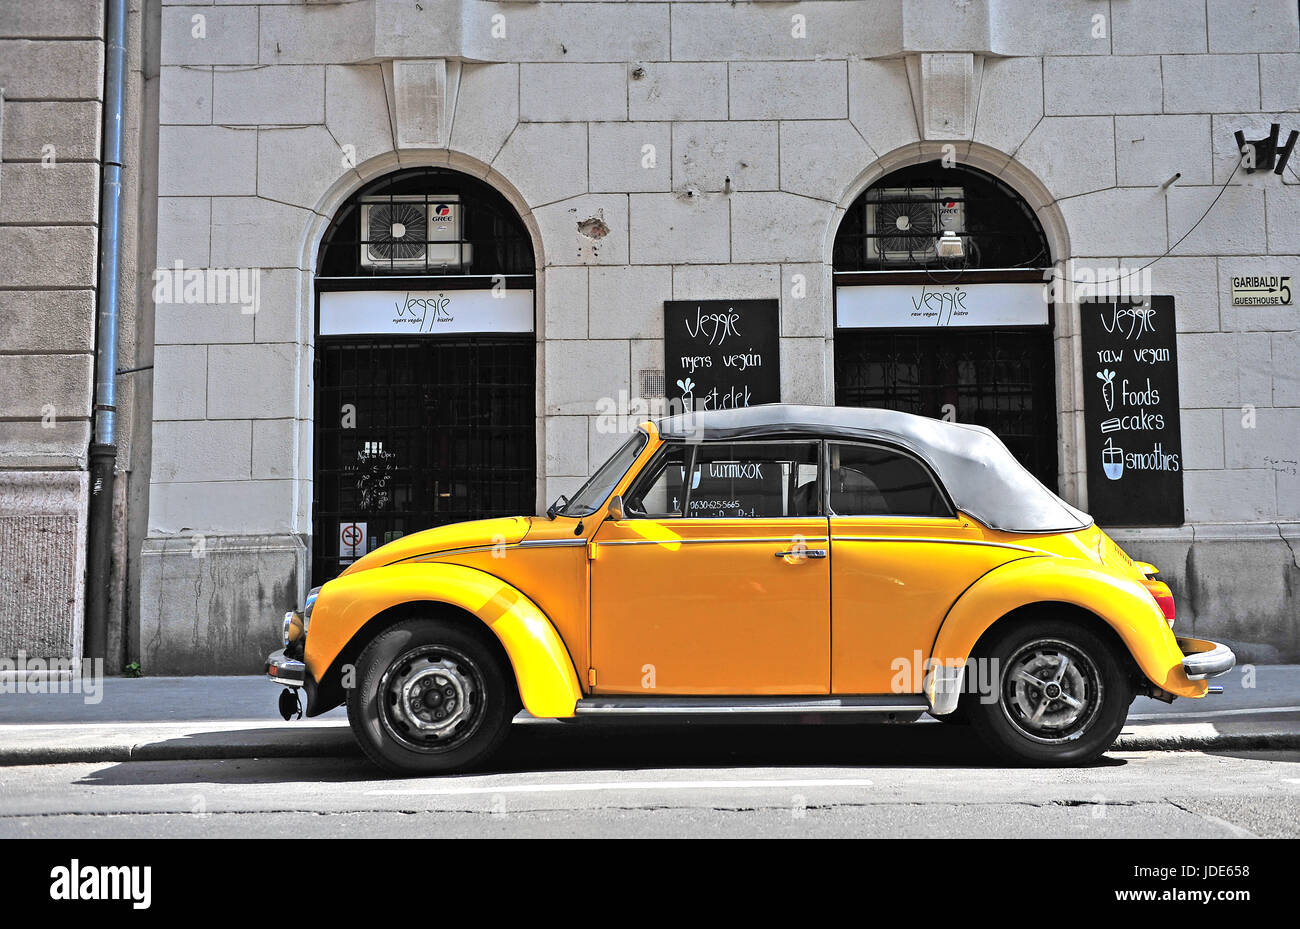 BUDAPEST, HUNGARY - MAY 29: Yellow retro Volkswagen beetle car in in street of Budapest on May 29, 2016. Stock Photo